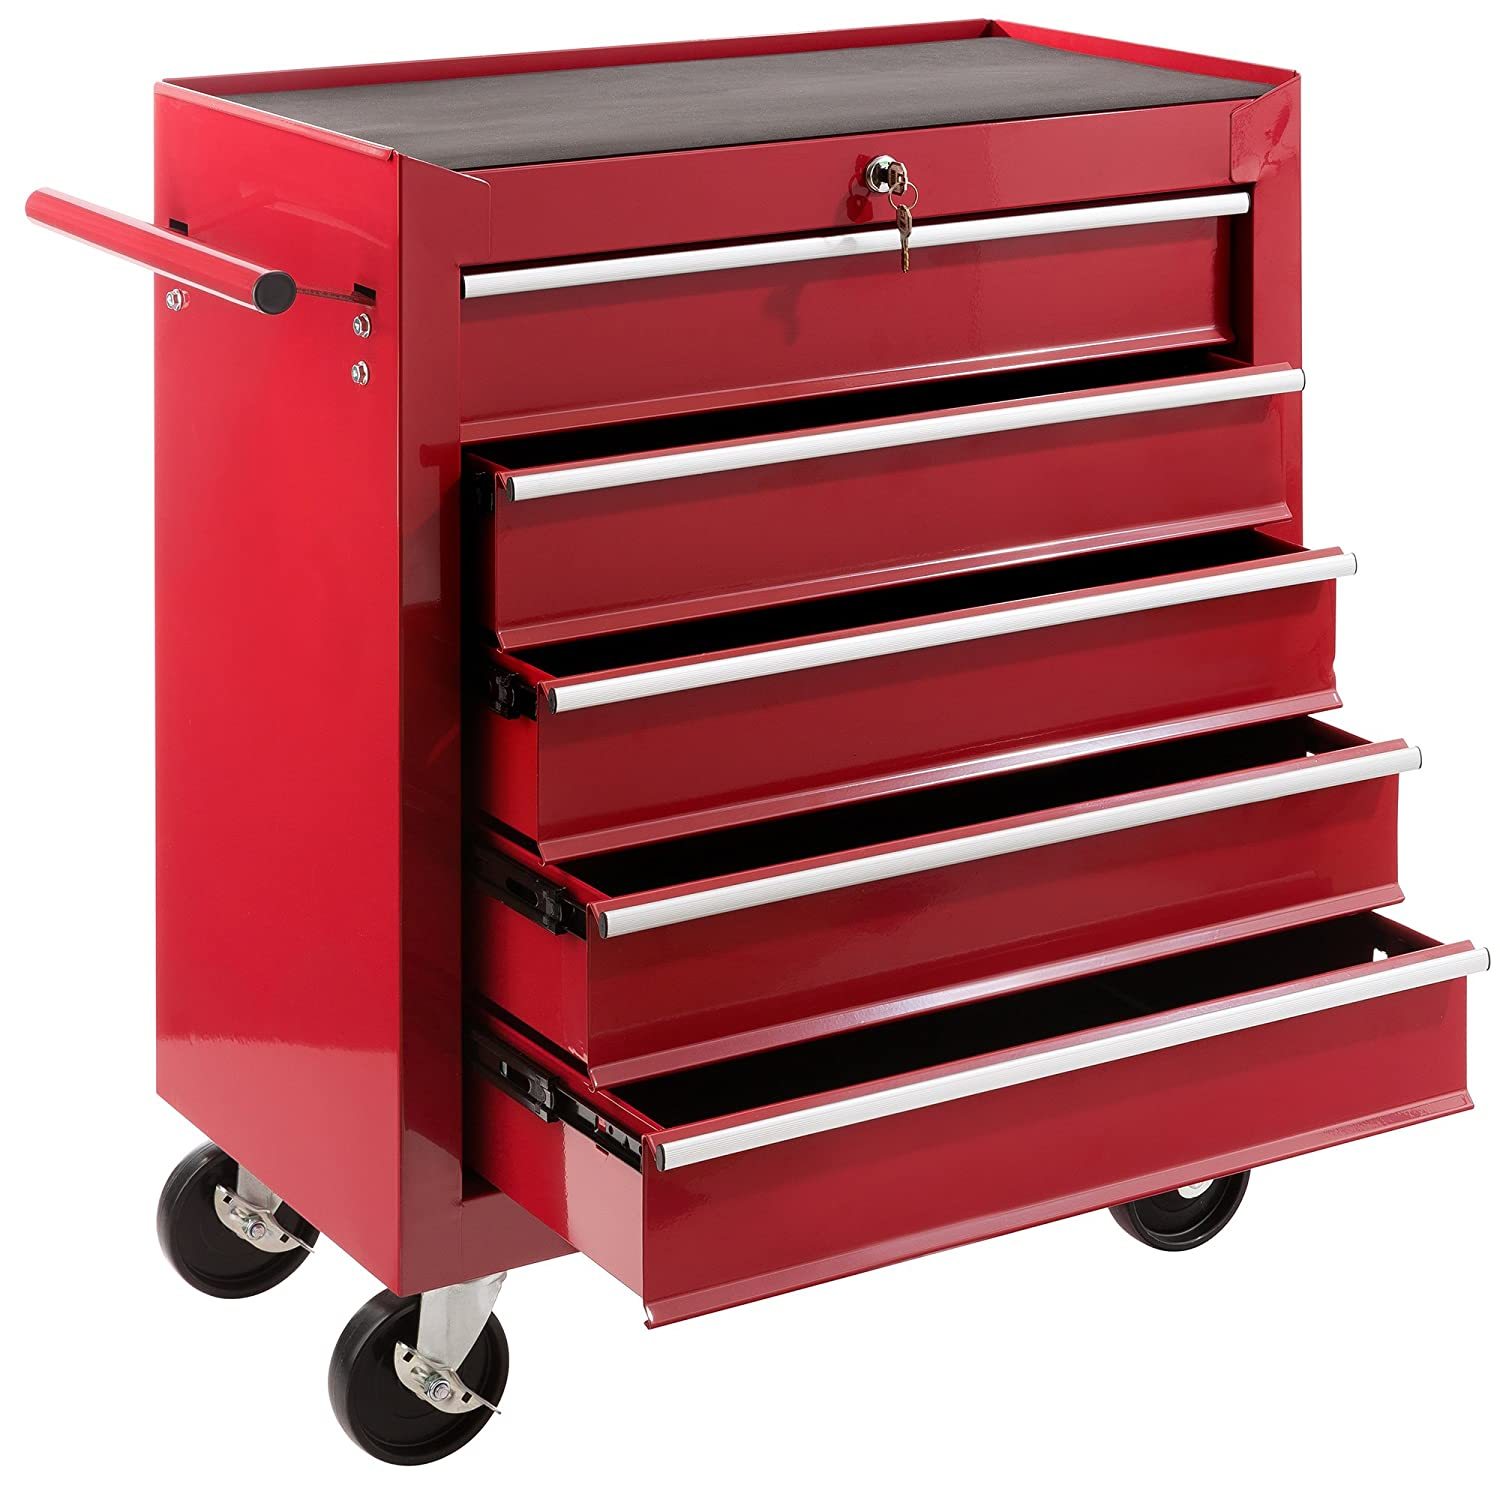 Arebos Tool Trolley with 5 drawers / lockabel / red, blue or black (black) Canbolat Vertriebs GmbH